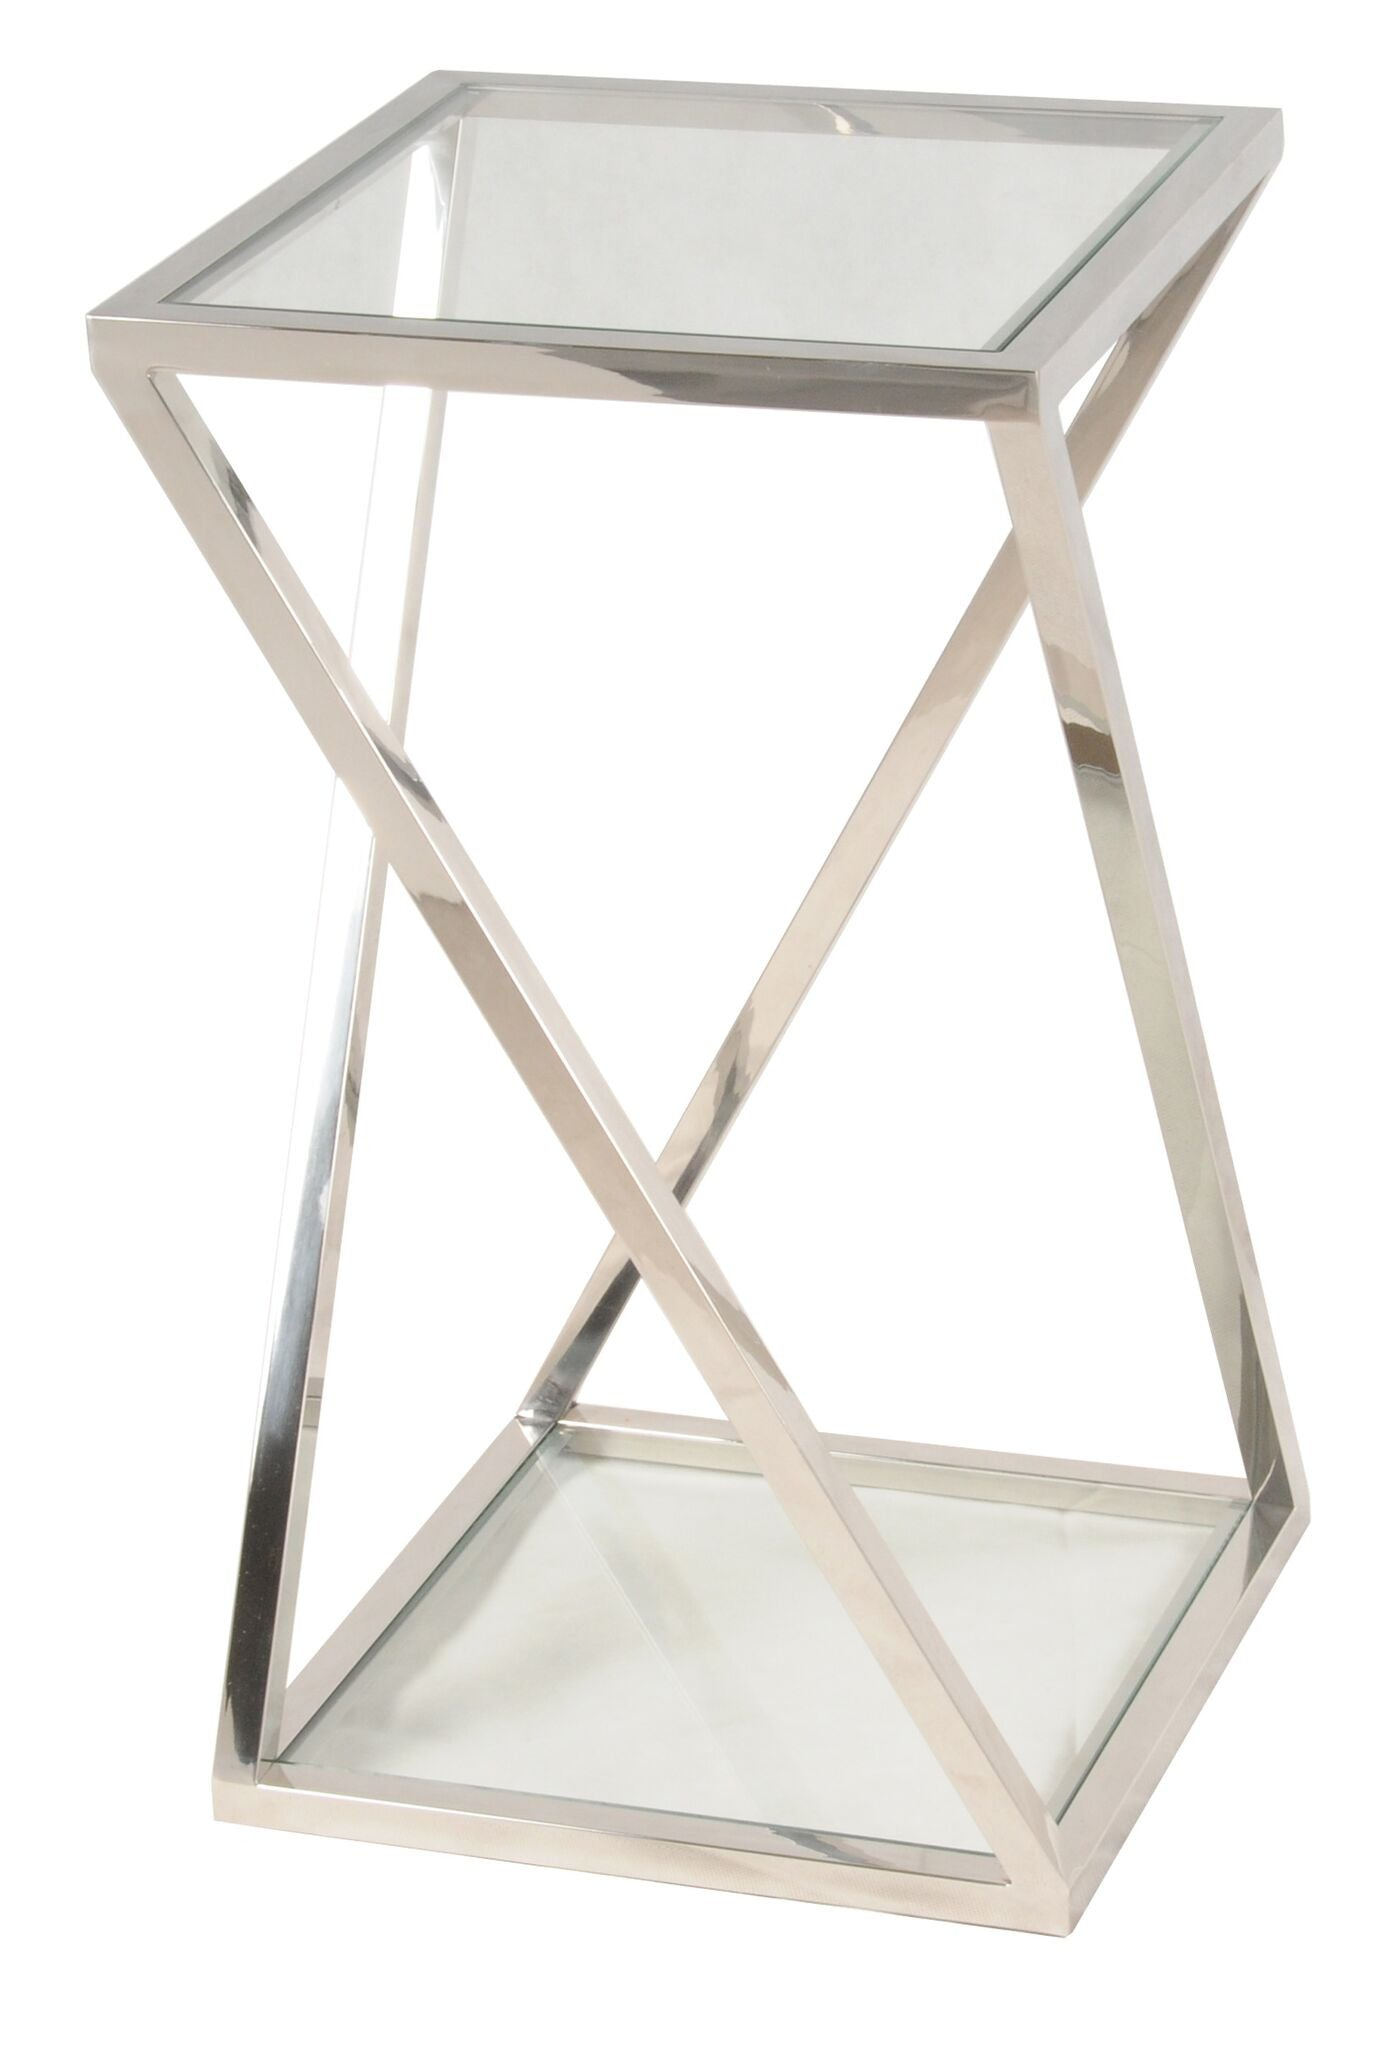 Villa park side table sterling silver short apt2b villa park side table sterling silver short apt2b 1 geotapseo Image collections